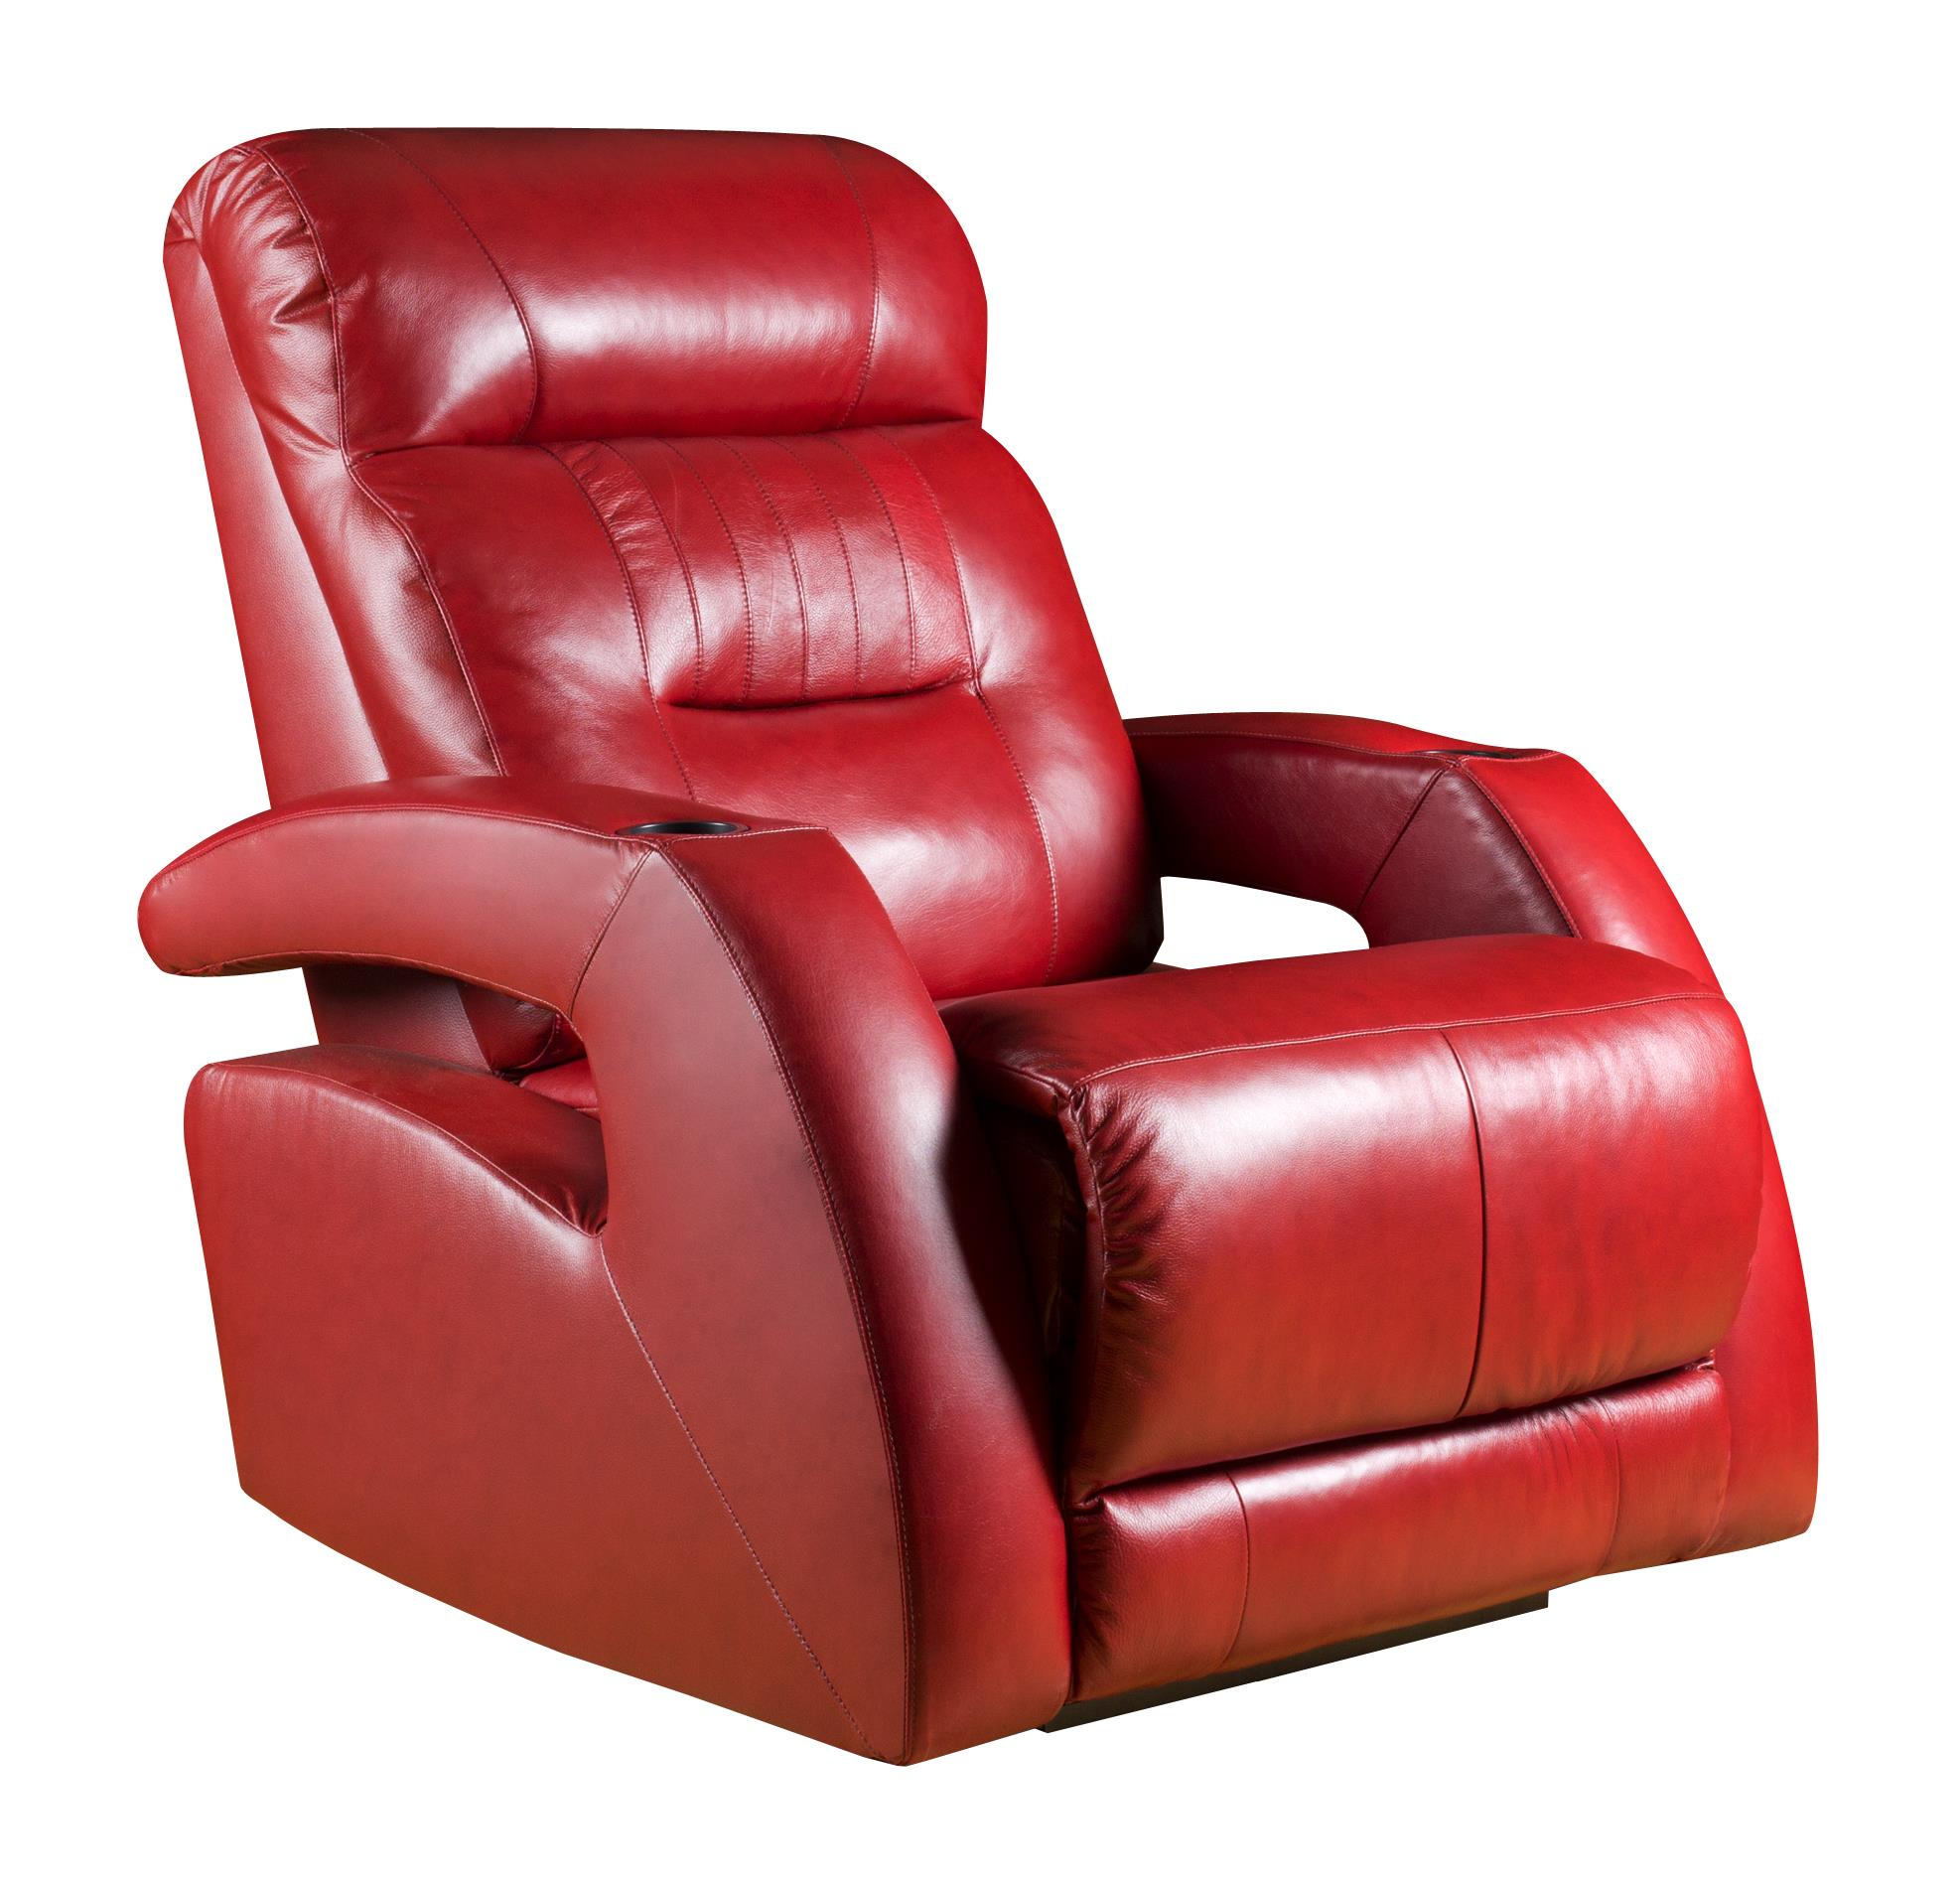 Southern Motion Viva Lay Flat Recliner   Item Number: 4577 905 11